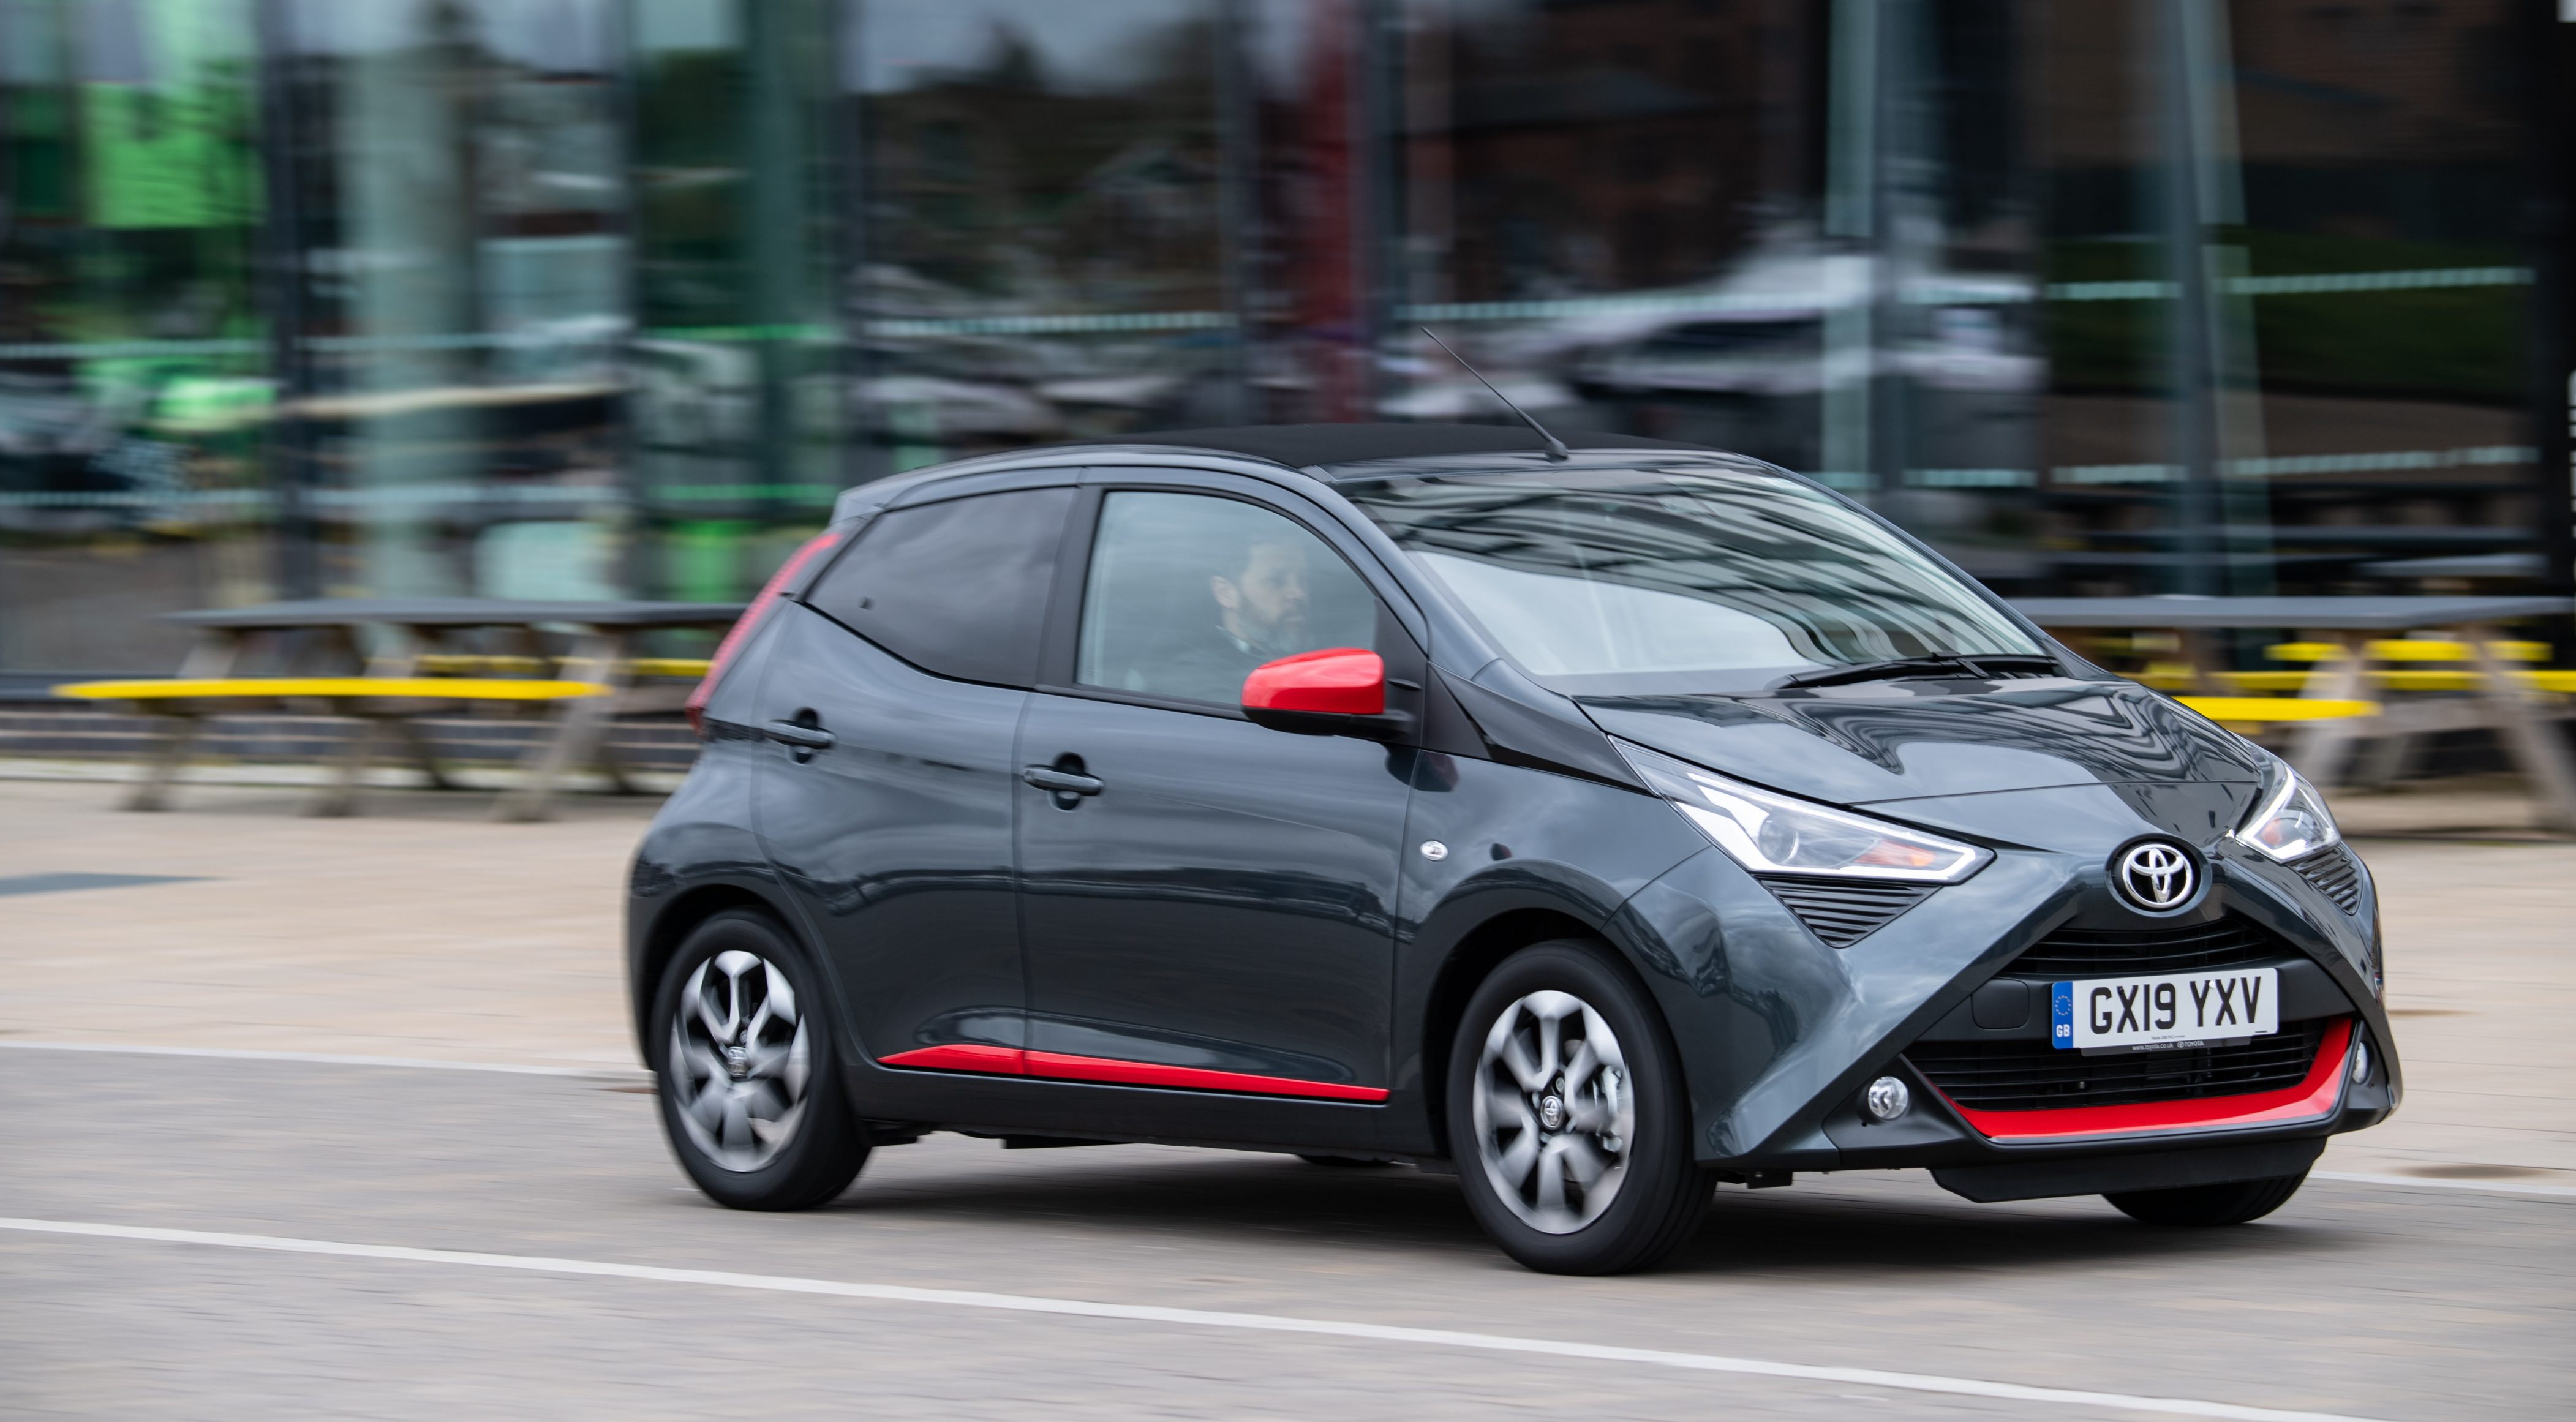 Only one engine makes up the Toyota Aygo range - a one litre petrol unit